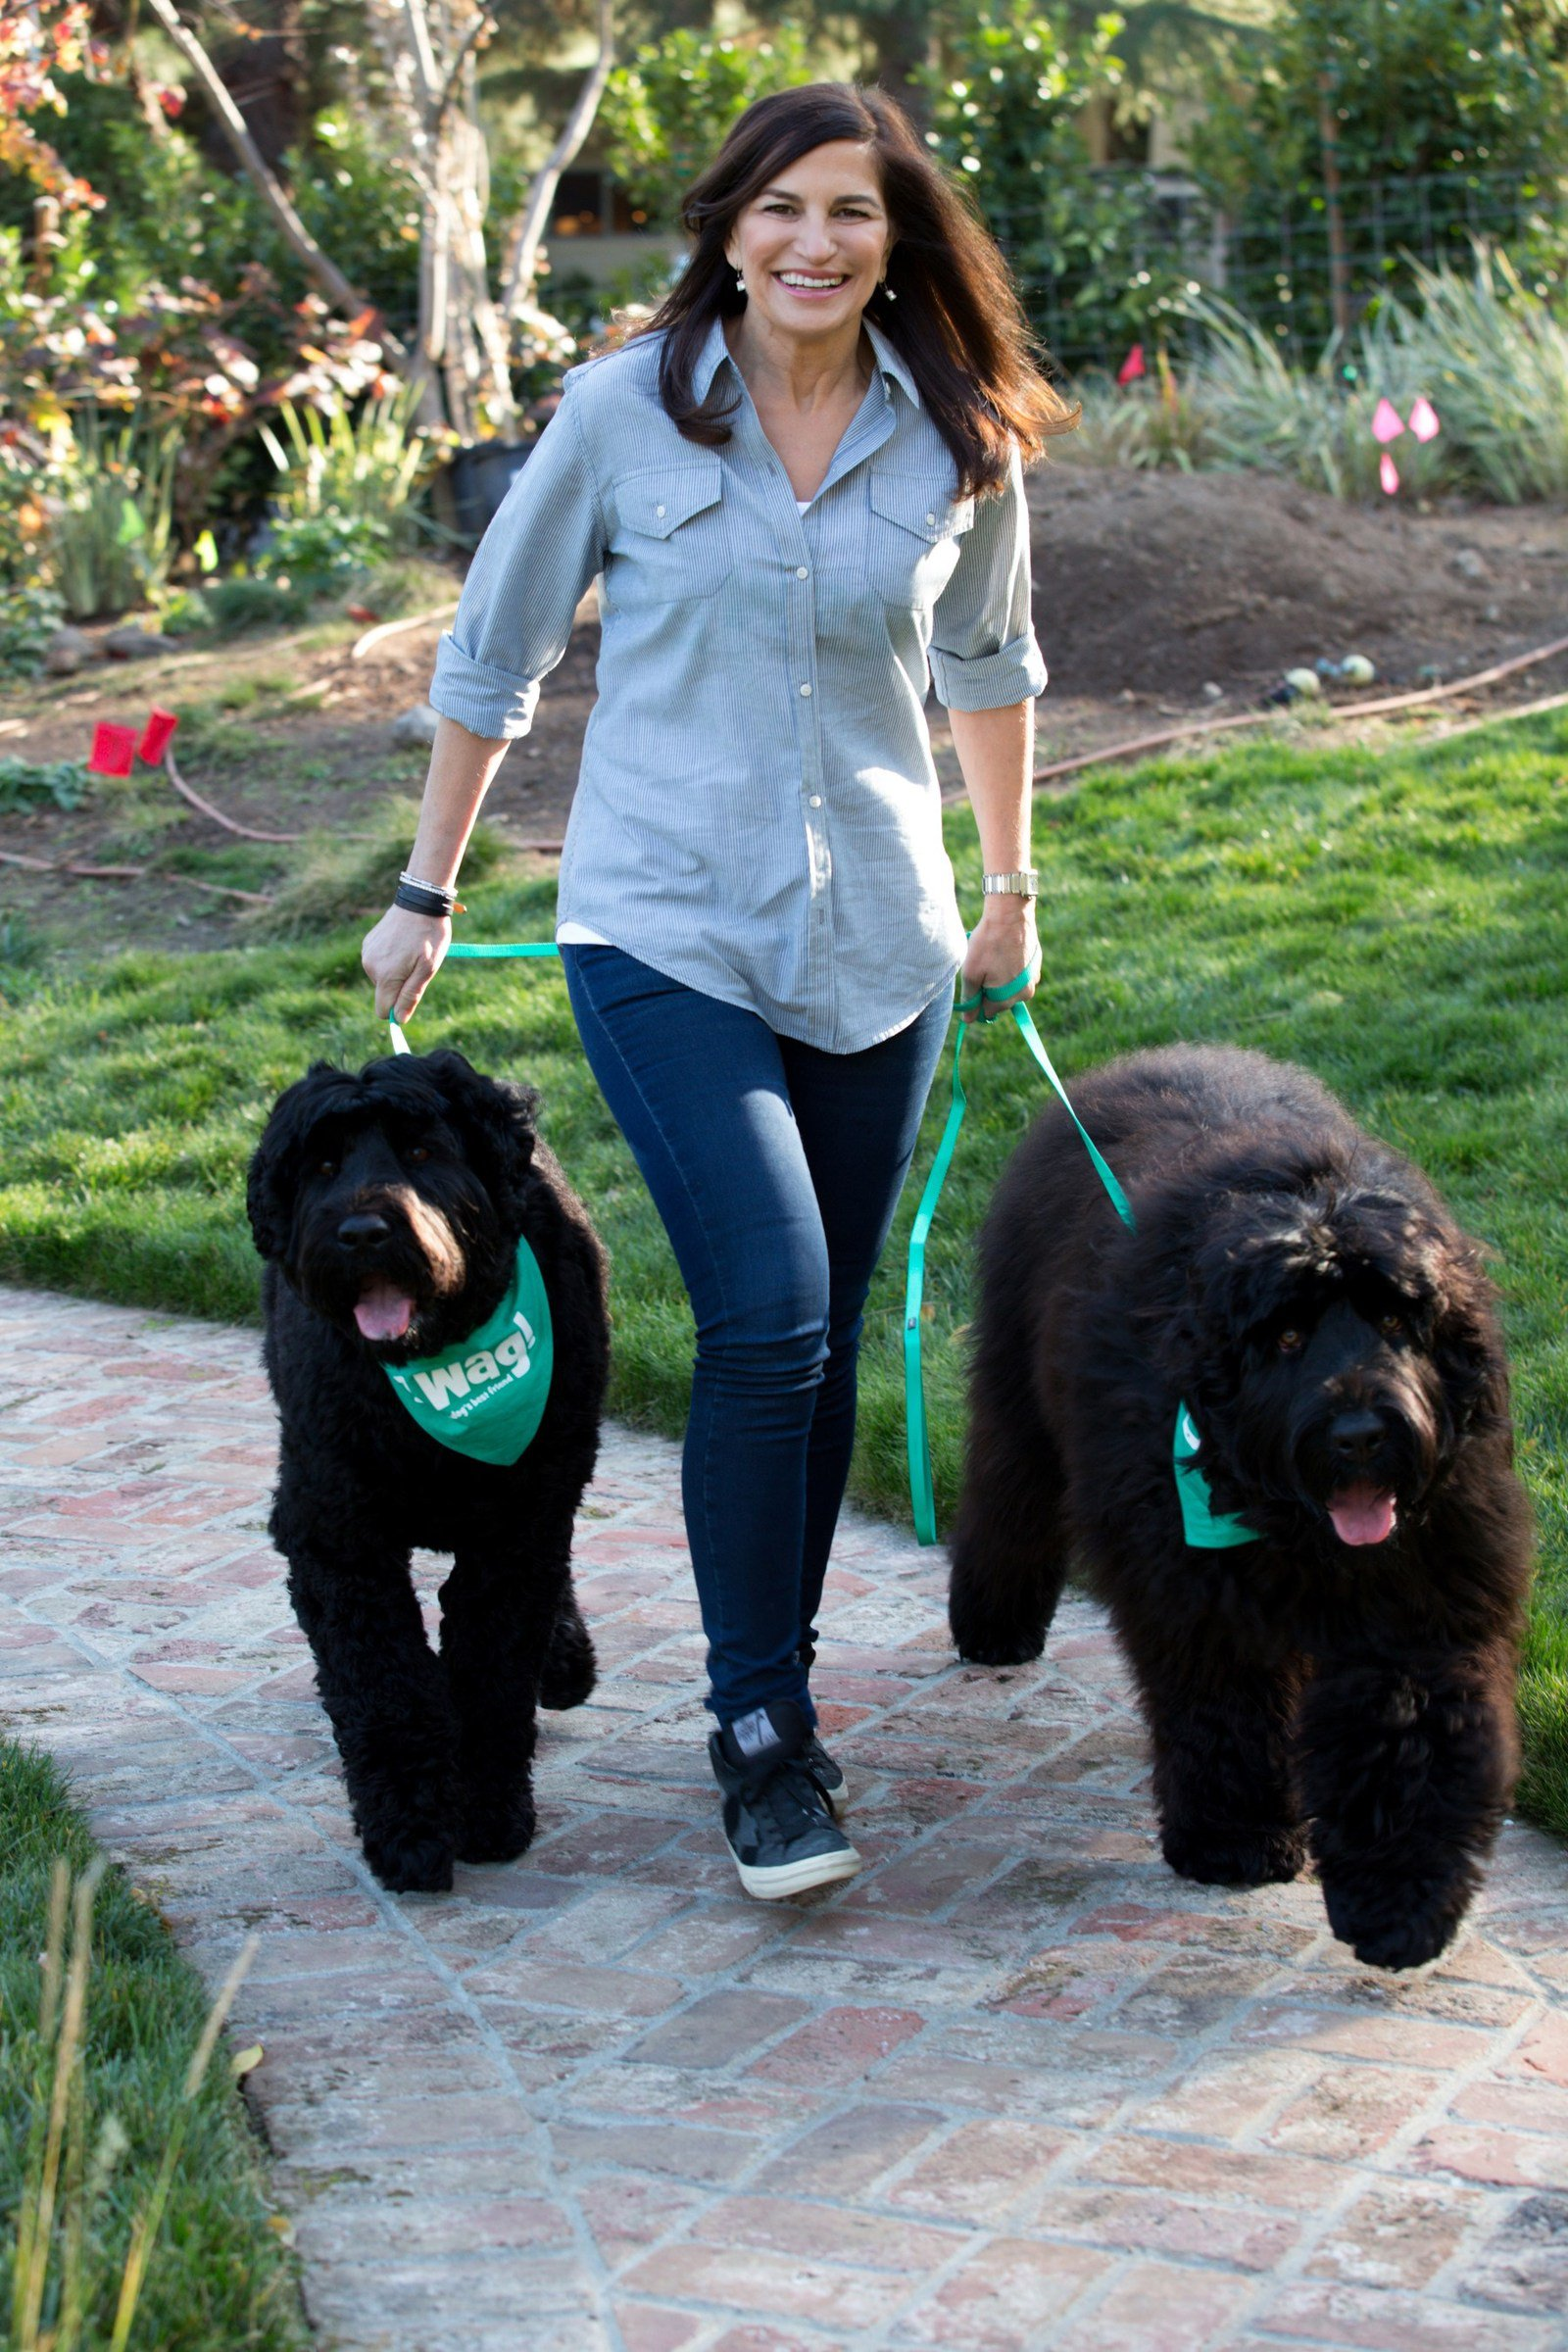 Wag! CEO Hilary Schneider with her two Black Russian Terriers, Sadie & Zoe